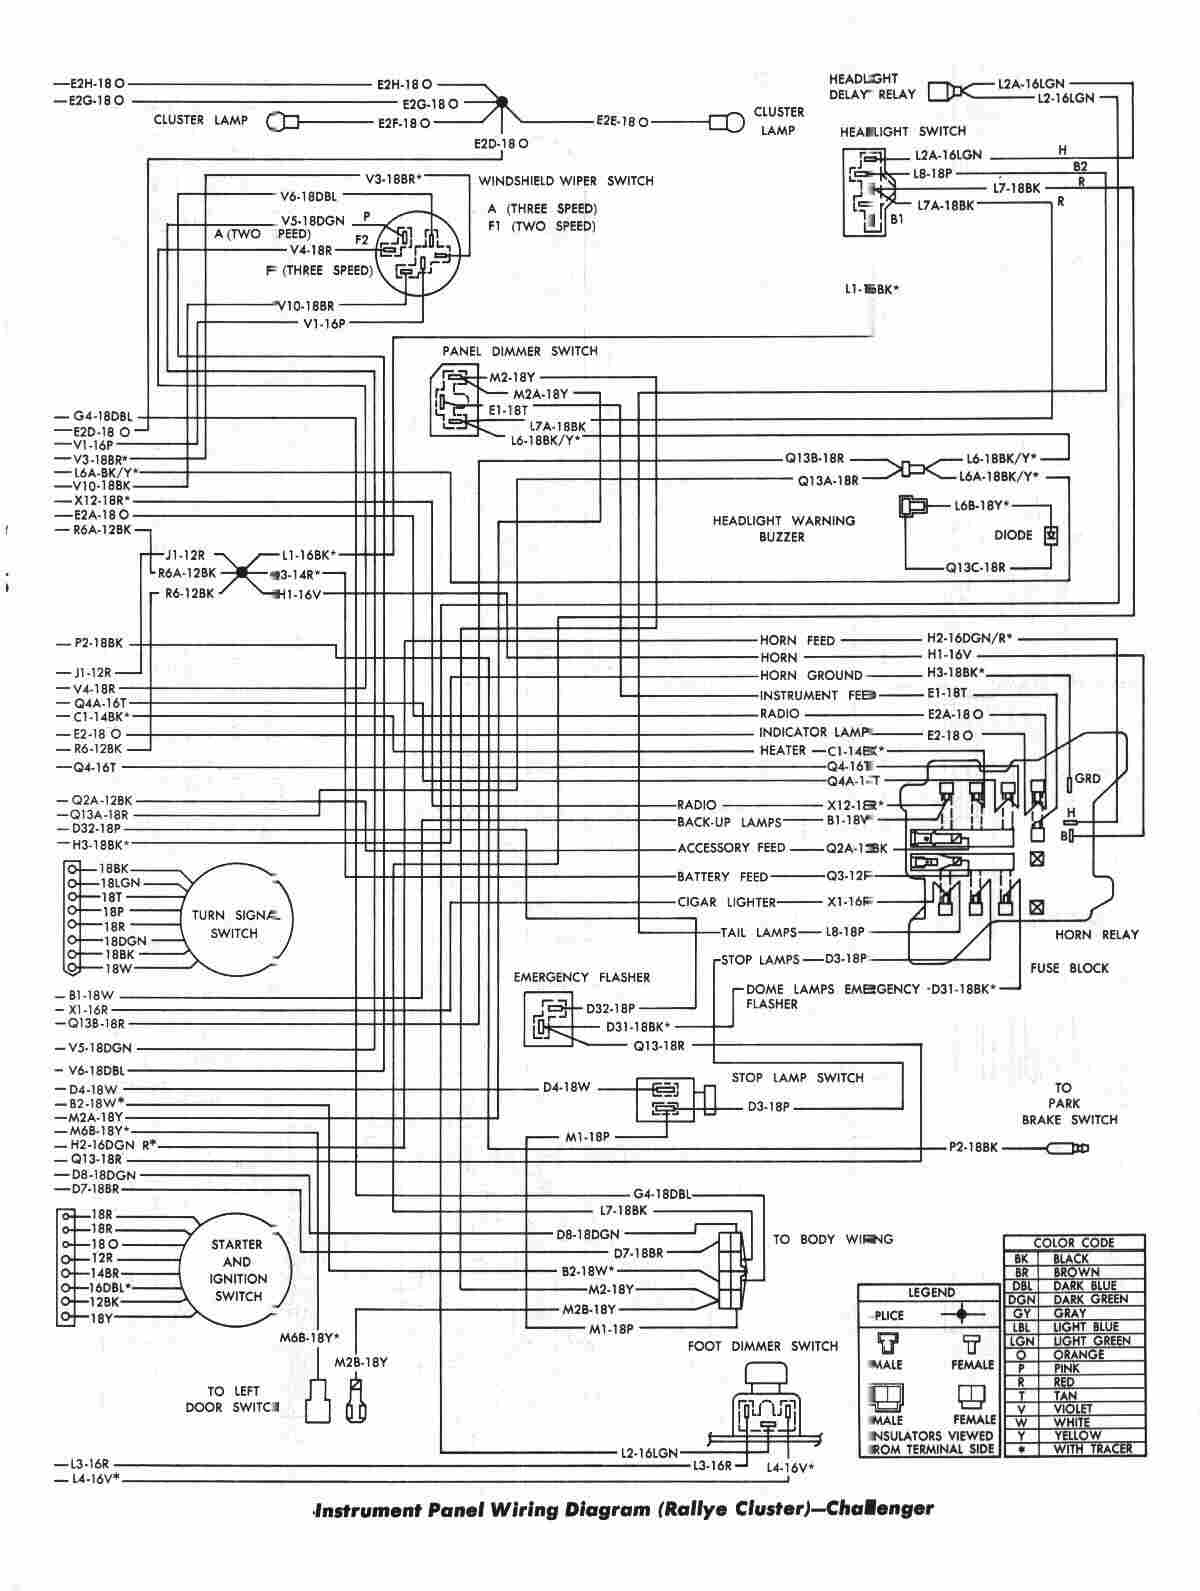 mopar performance ignition wiring diagram ford ranger car stereo dodge challenger 1970 instrument panel